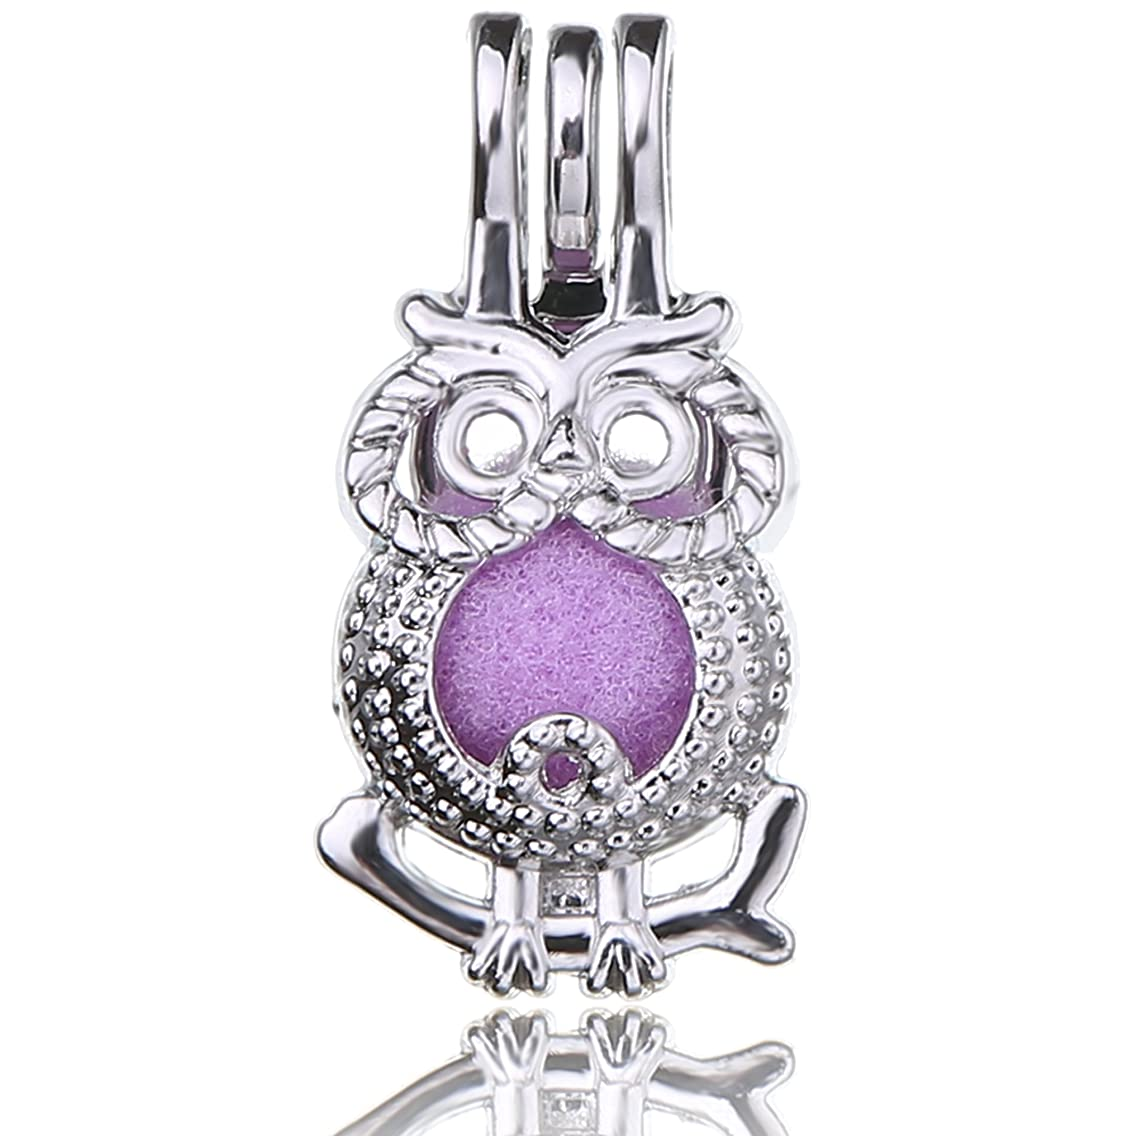 Fantasy 10pcs Owl Platinum Plated Hollow Pearl Bead Cage Pendant Essential Oil Scent Diffuser Pendant Necklace Jewelry Making Supplies (Owl)